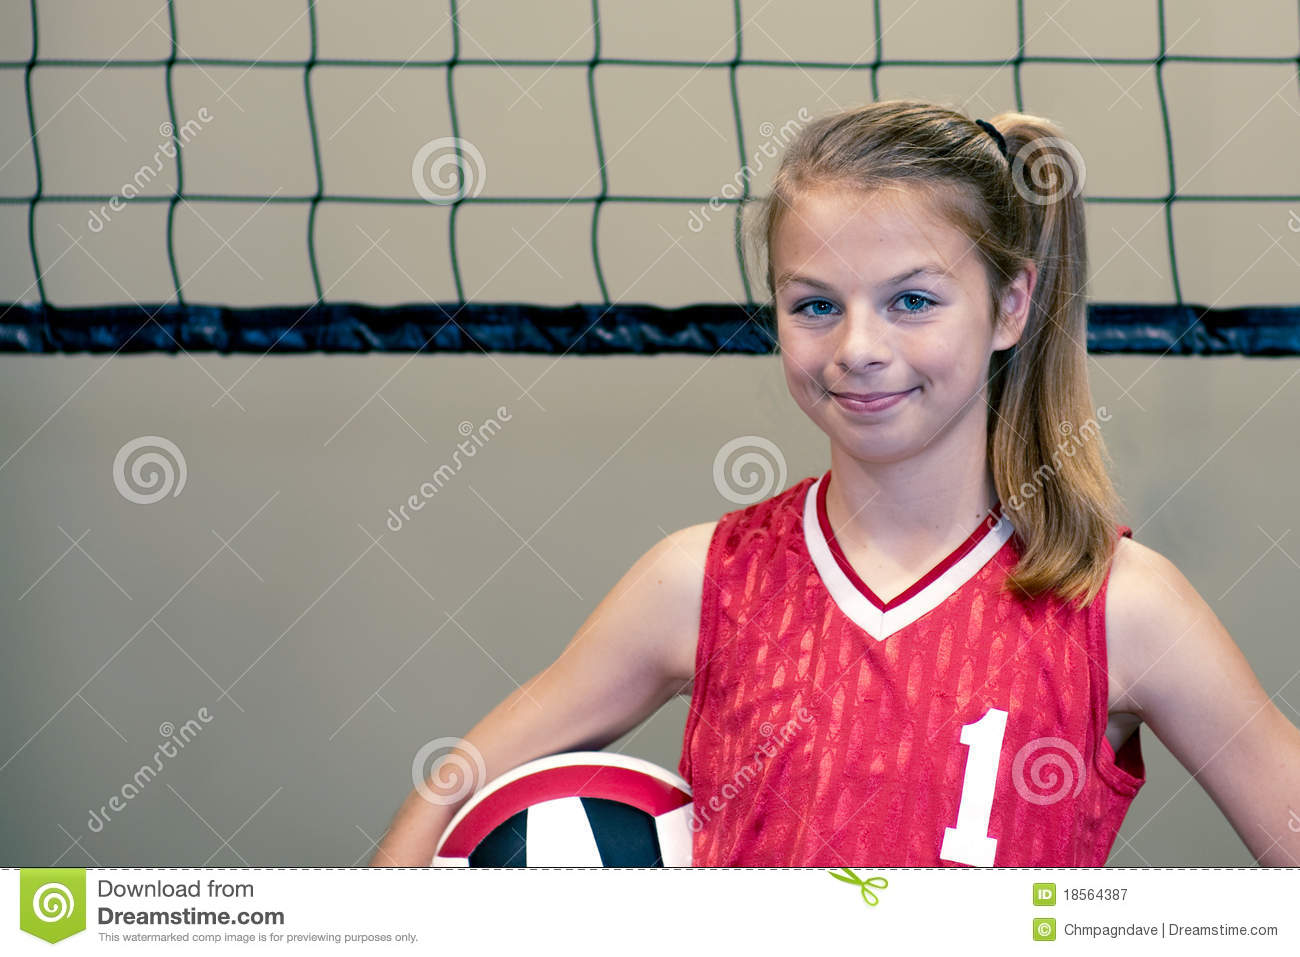 Active Young Women Volleyball Player Sport Stock Vector: Teenaged Girl Volleyball Player Stock Image